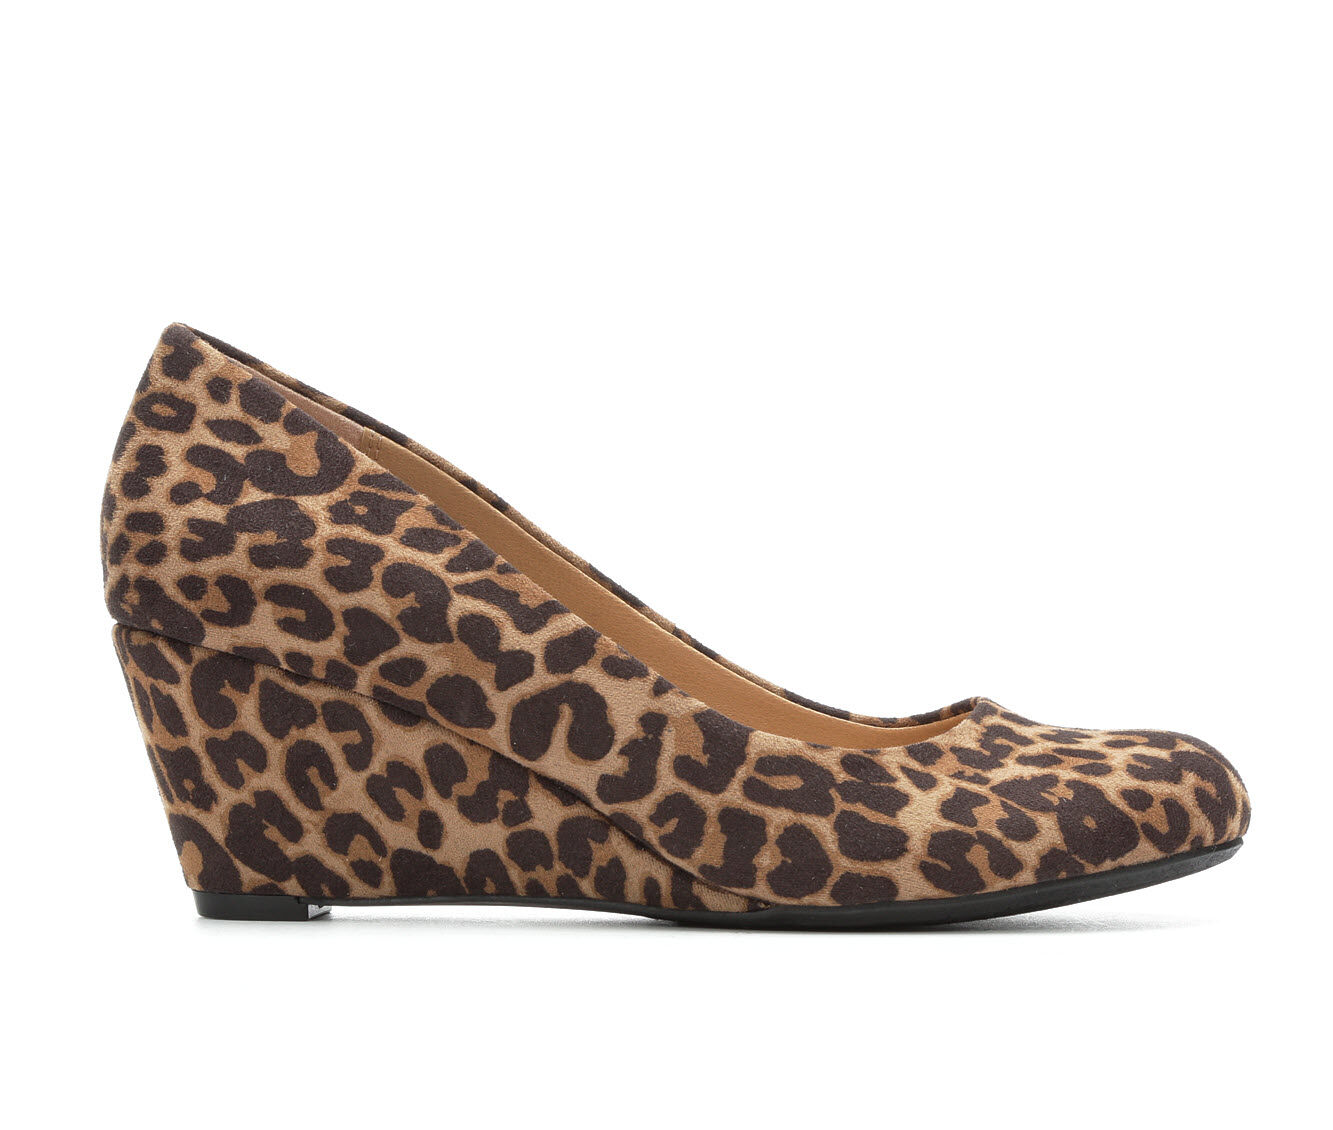 Factory Outlet Women's David Aaron Traci Wedges Leopard